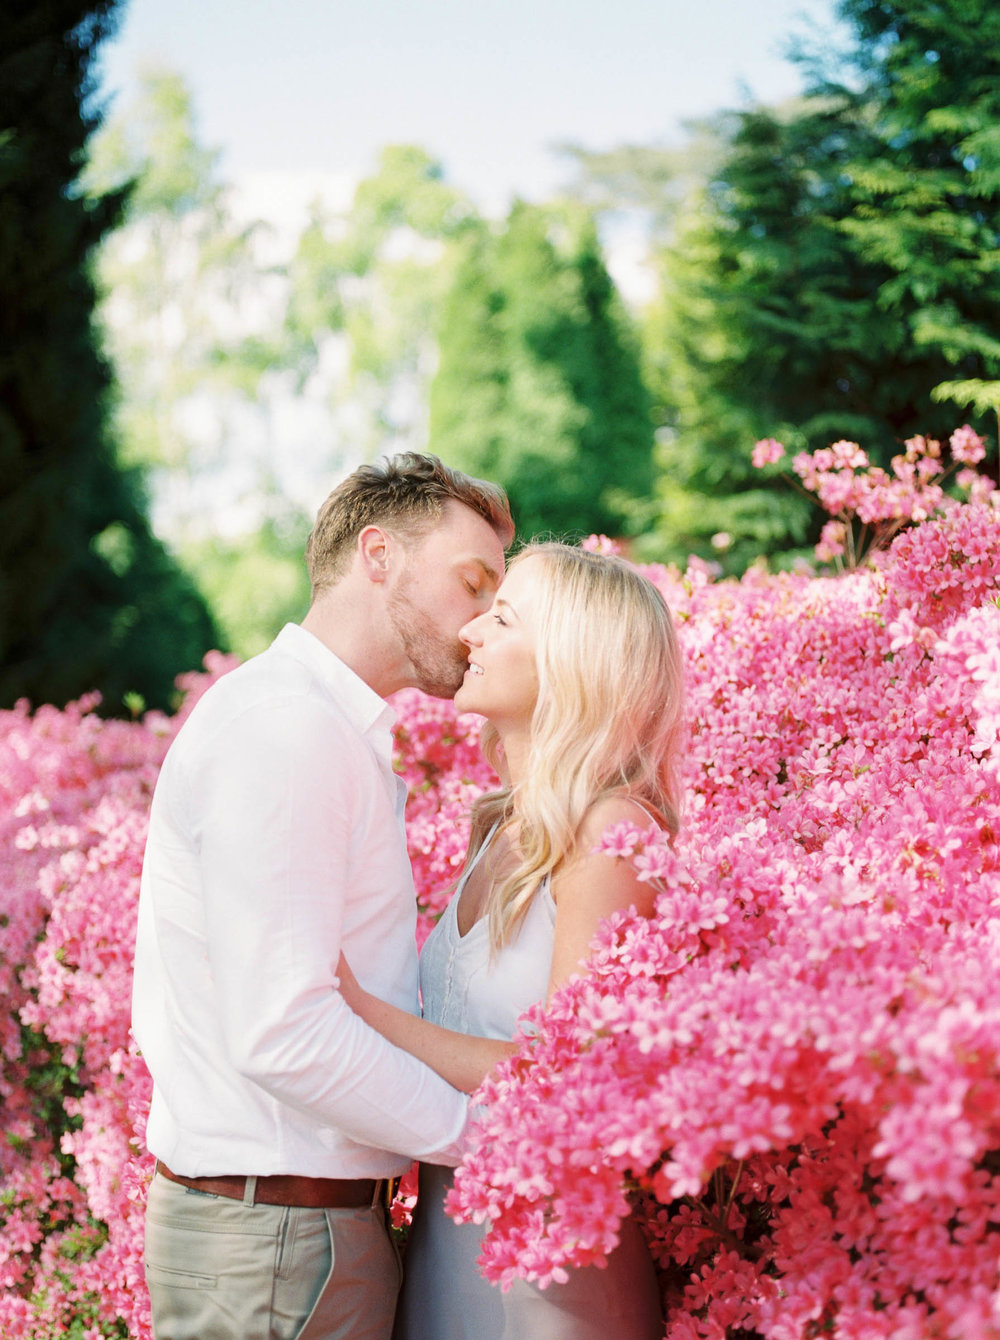 Amy O'Boyle Photography- Destination & UK Fine Art Film Wedding Photographer- Sheffield Park Garden National Trust Spring Engagement Shoot-20.jpg